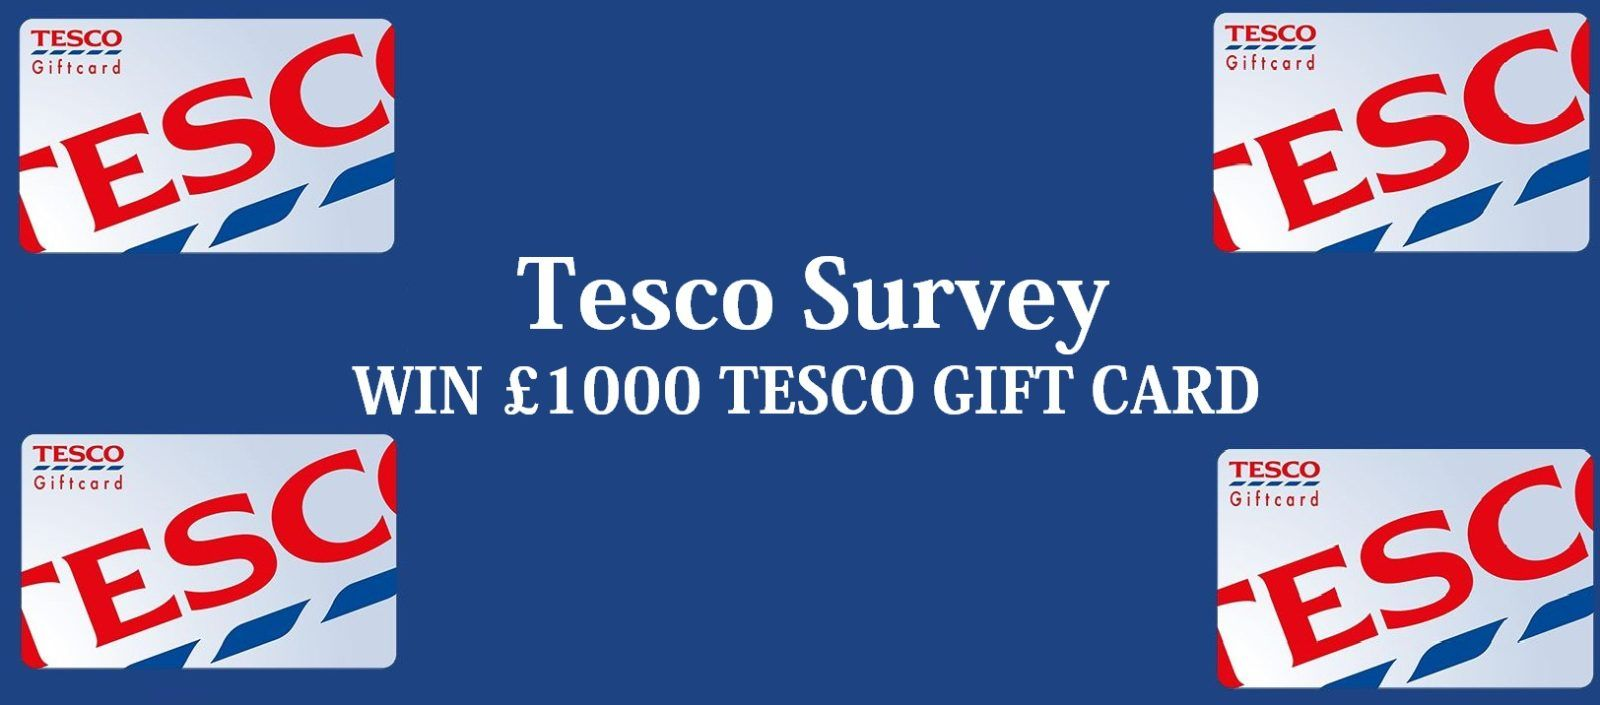 Www Tescoviews Com With Images Tesco Gifts